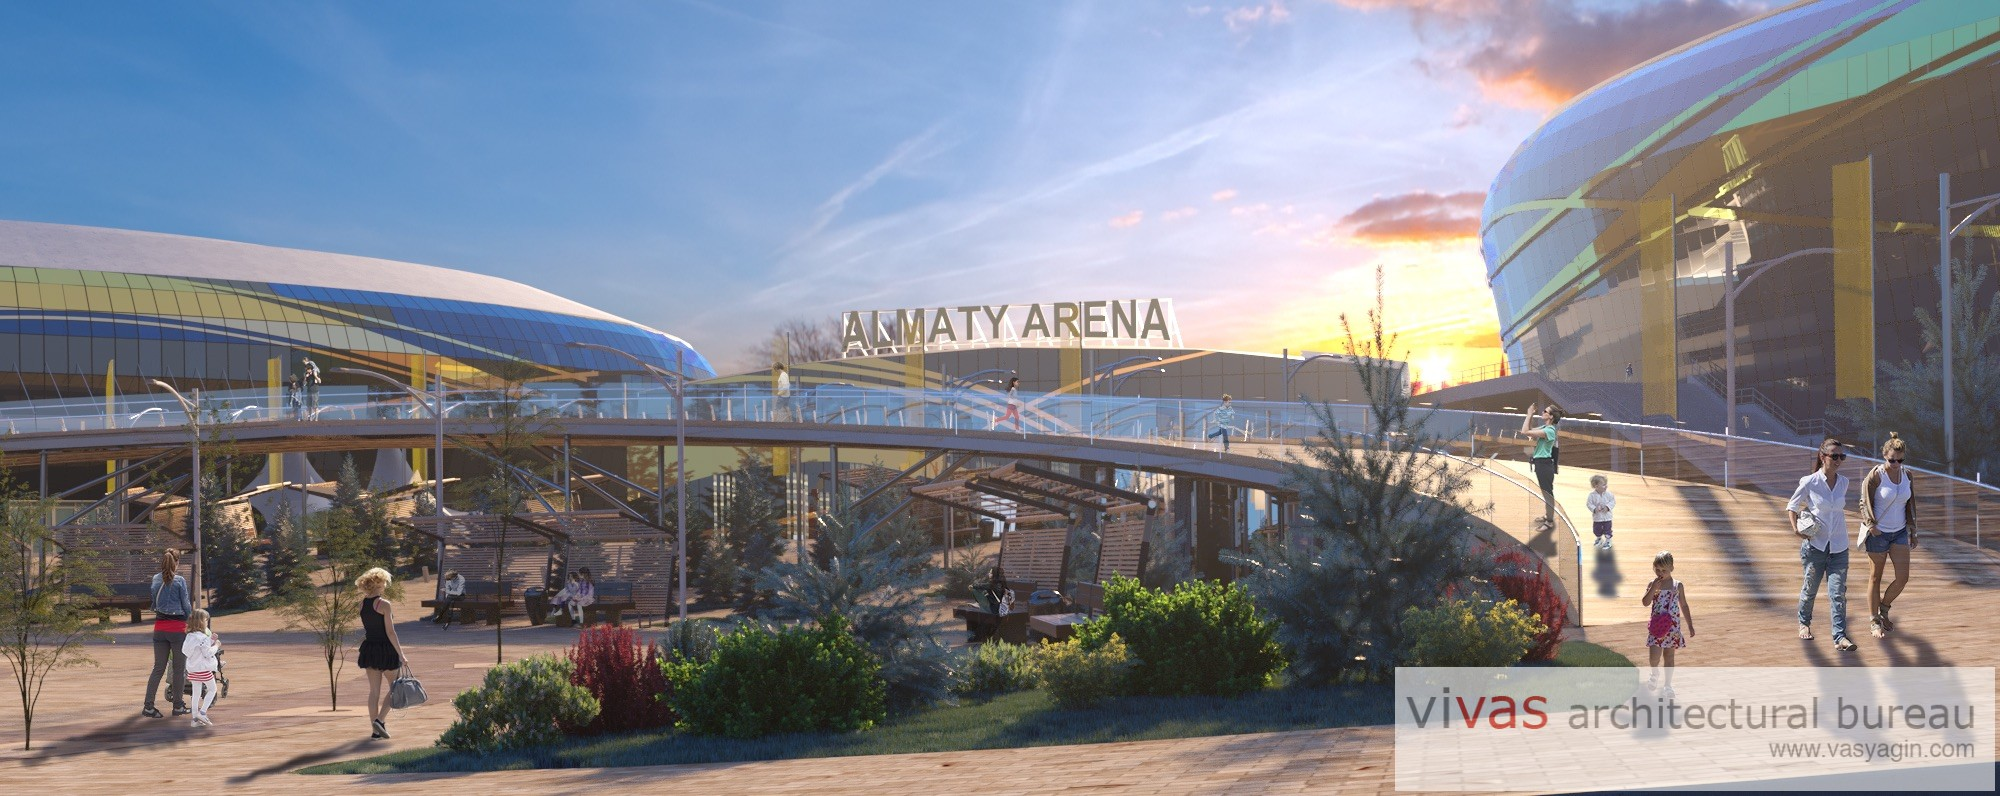 Renovation of Almaty-Arena site in Almaty, Kazakhstan